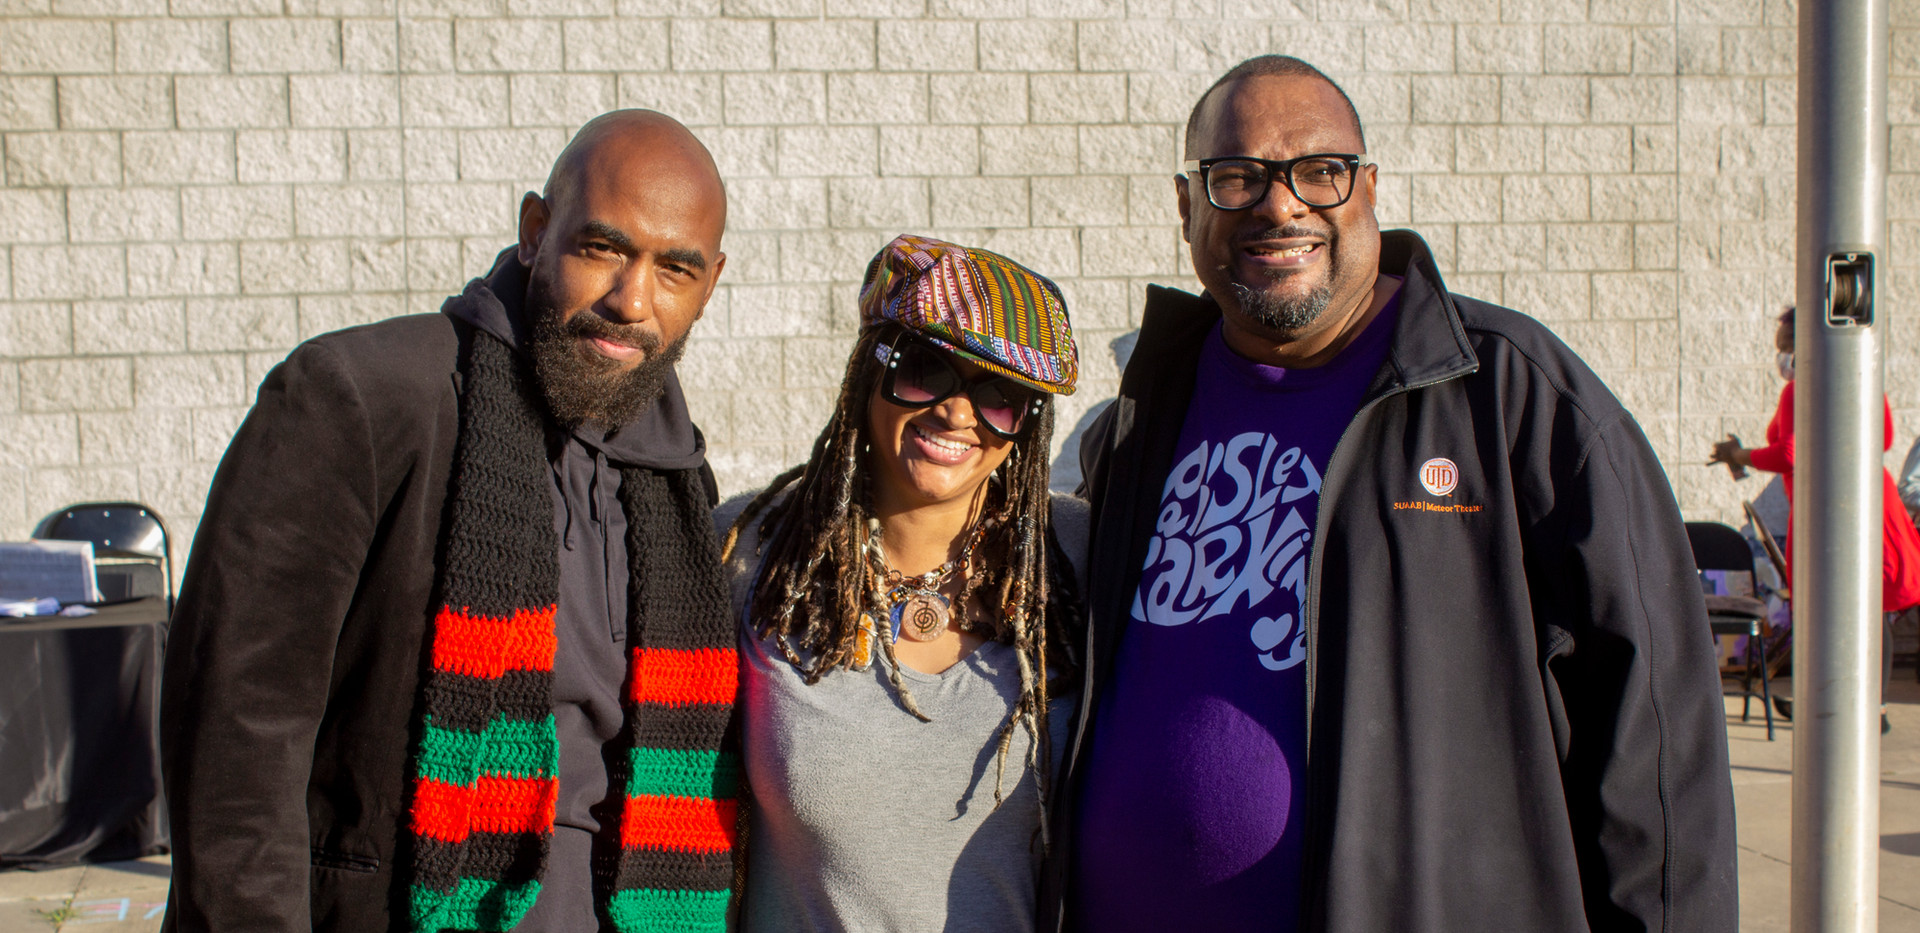 The founders of The Art Inspired Healing Collective